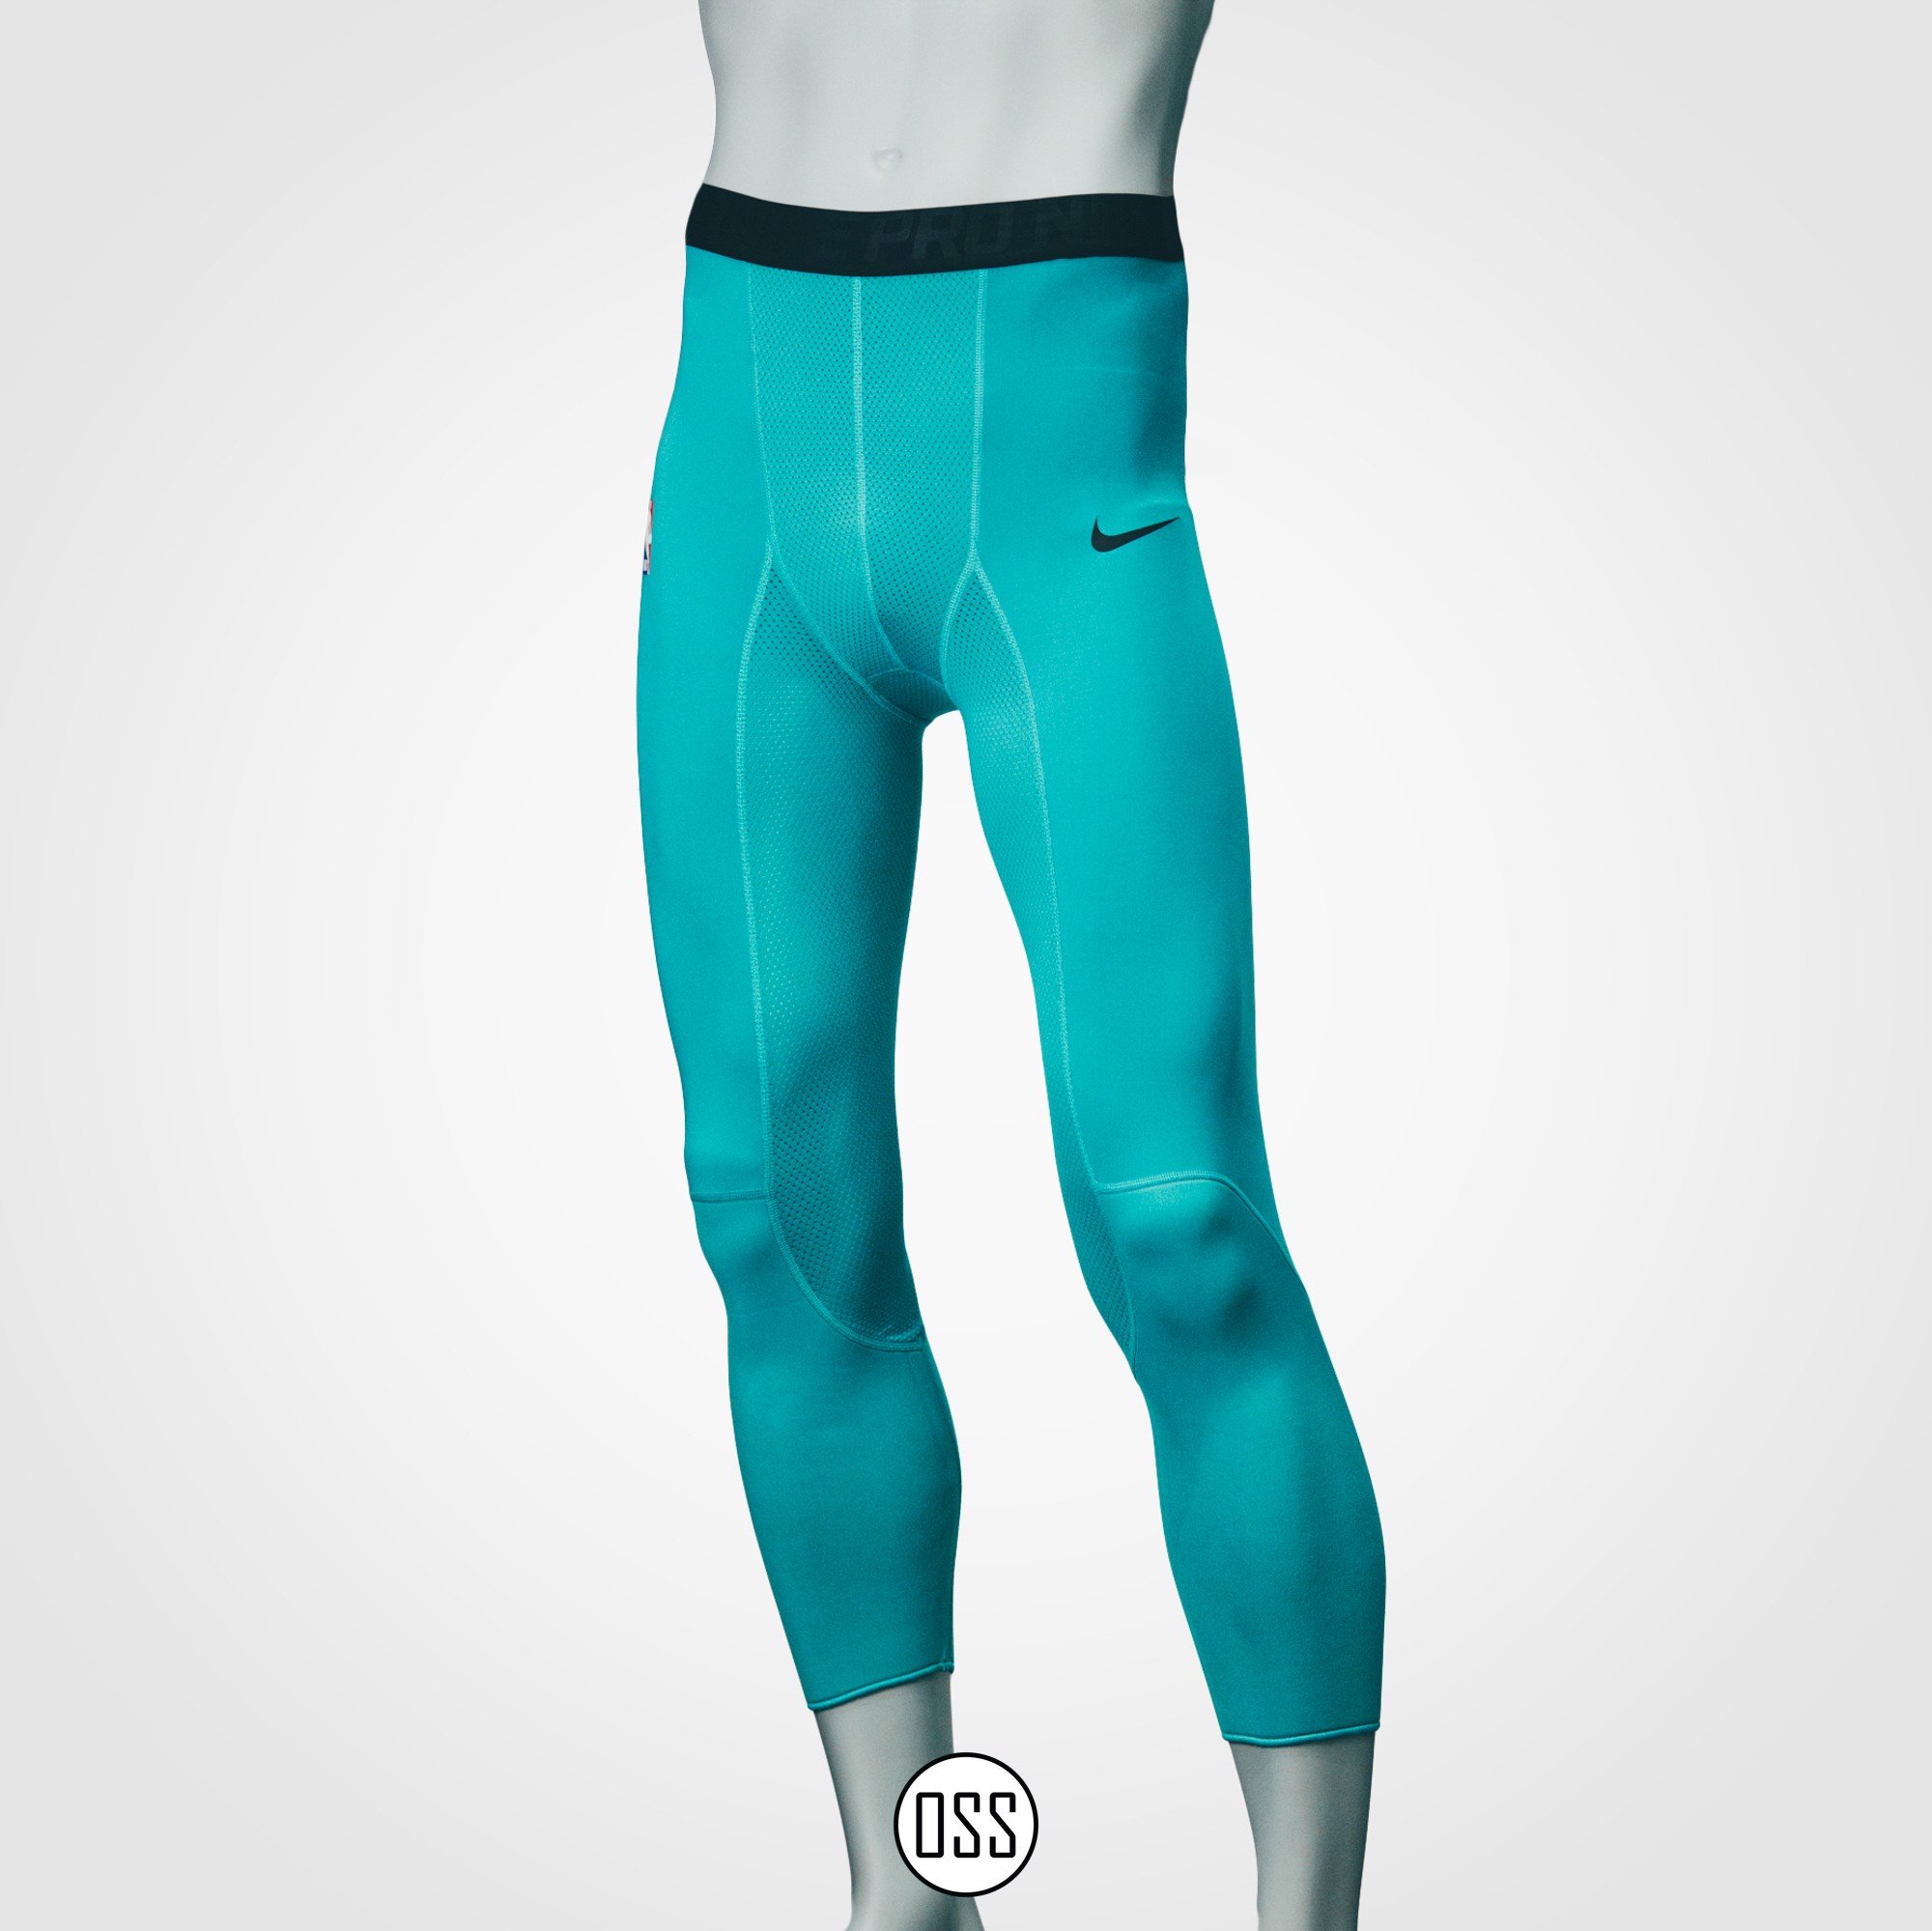 Nike Pro Combat Tight - Mint